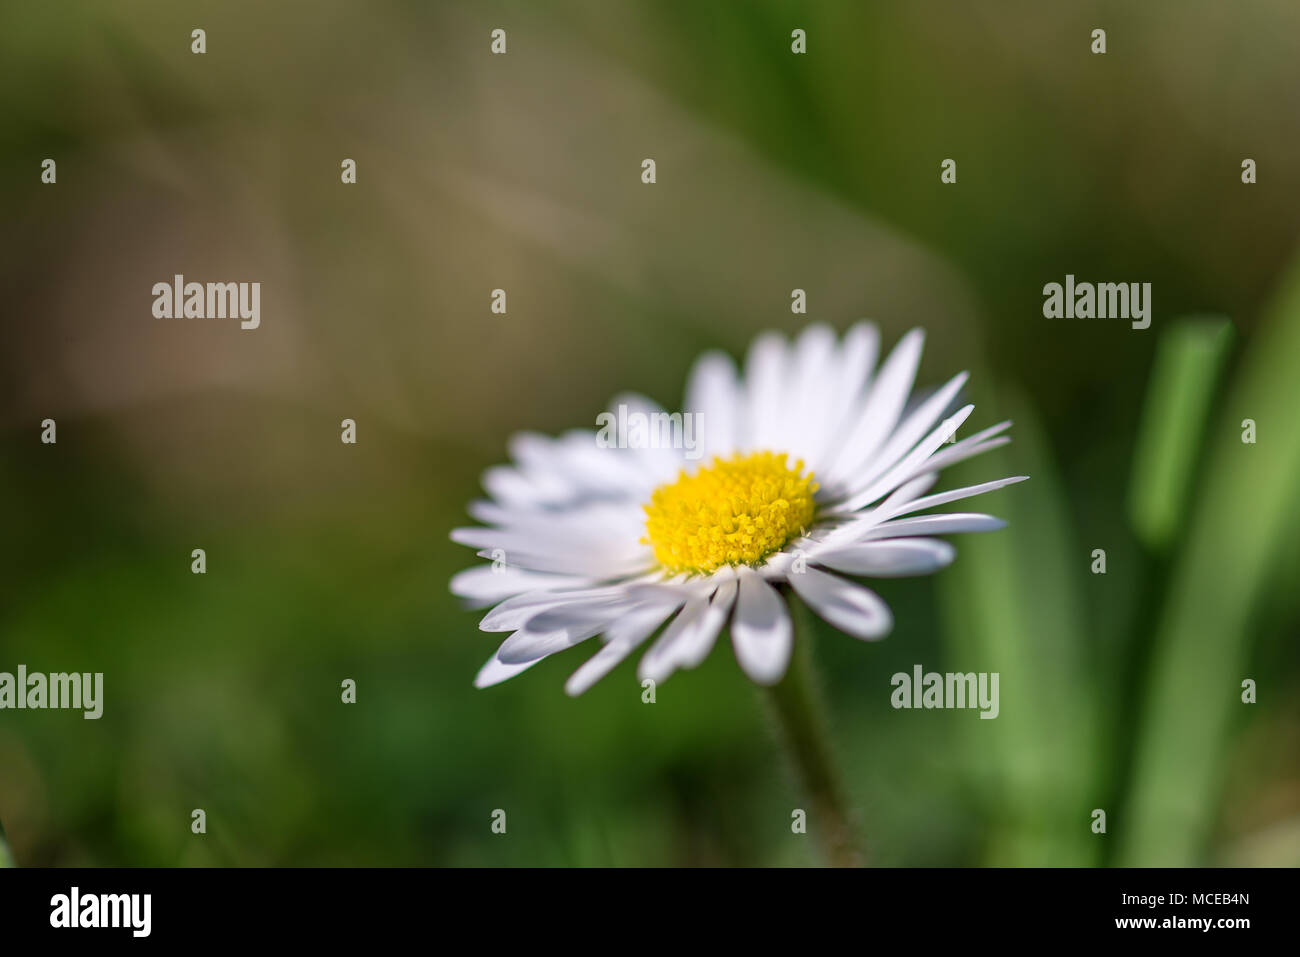 Beautiful Alone Field Daisy Flower With White Petals Grows In Summer